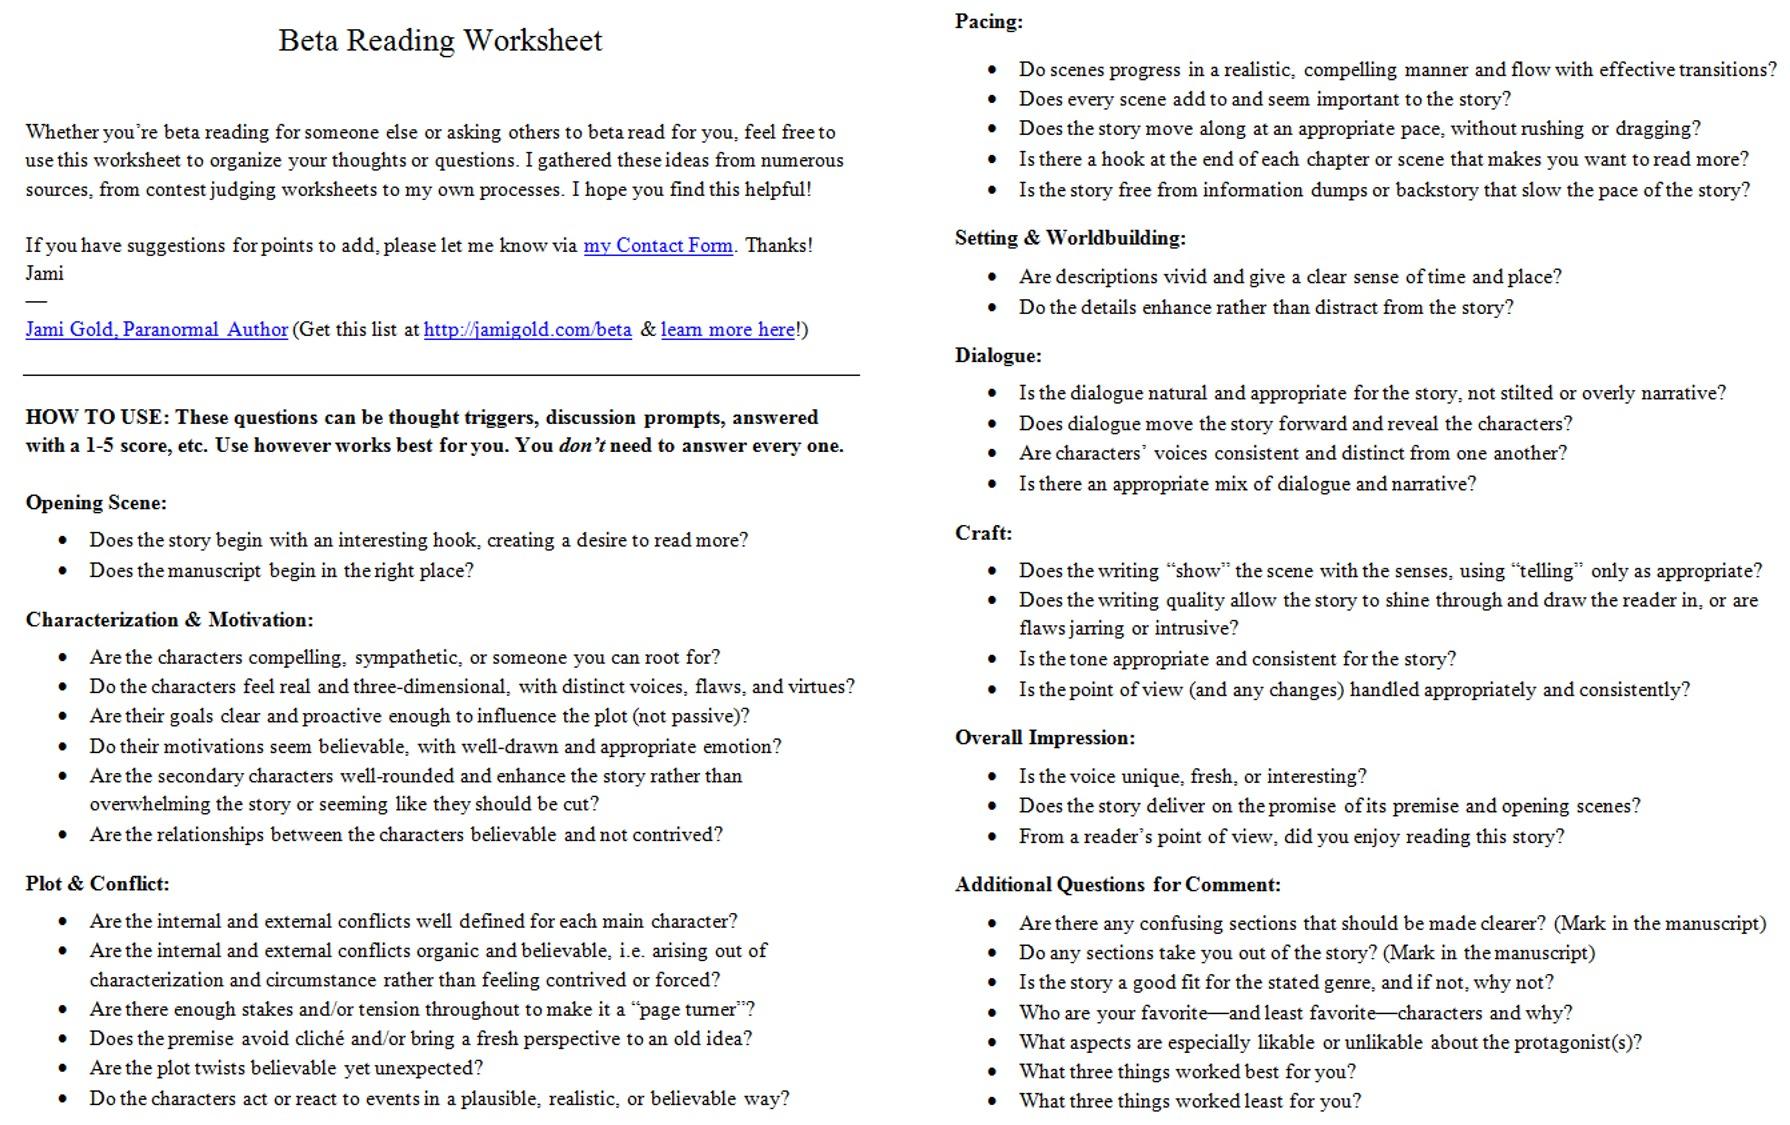 Weirdmailus  Personable Worksheets For Writers  Jami Gold Paranormal Author With Licious Screen Shot Of The Twopage Beta Reading Worksheet With Beautiful Prepositions Of Place Worksheet Also Numbers  Worksheets In Addition First Grade Geometry Worksheets And Exponential Functions Word Problems Worksheet As Well As How To Draw Worksheets Additionally Th Worksheet From Jamigoldcom With Weirdmailus  Licious Worksheets For Writers  Jami Gold Paranormal Author With Beautiful Screen Shot Of The Twopage Beta Reading Worksheet And Personable Prepositions Of Place Worksheet Also Numbers  Worksheets In Addition First Grade Geometry Worksheets From Jamigoldcom